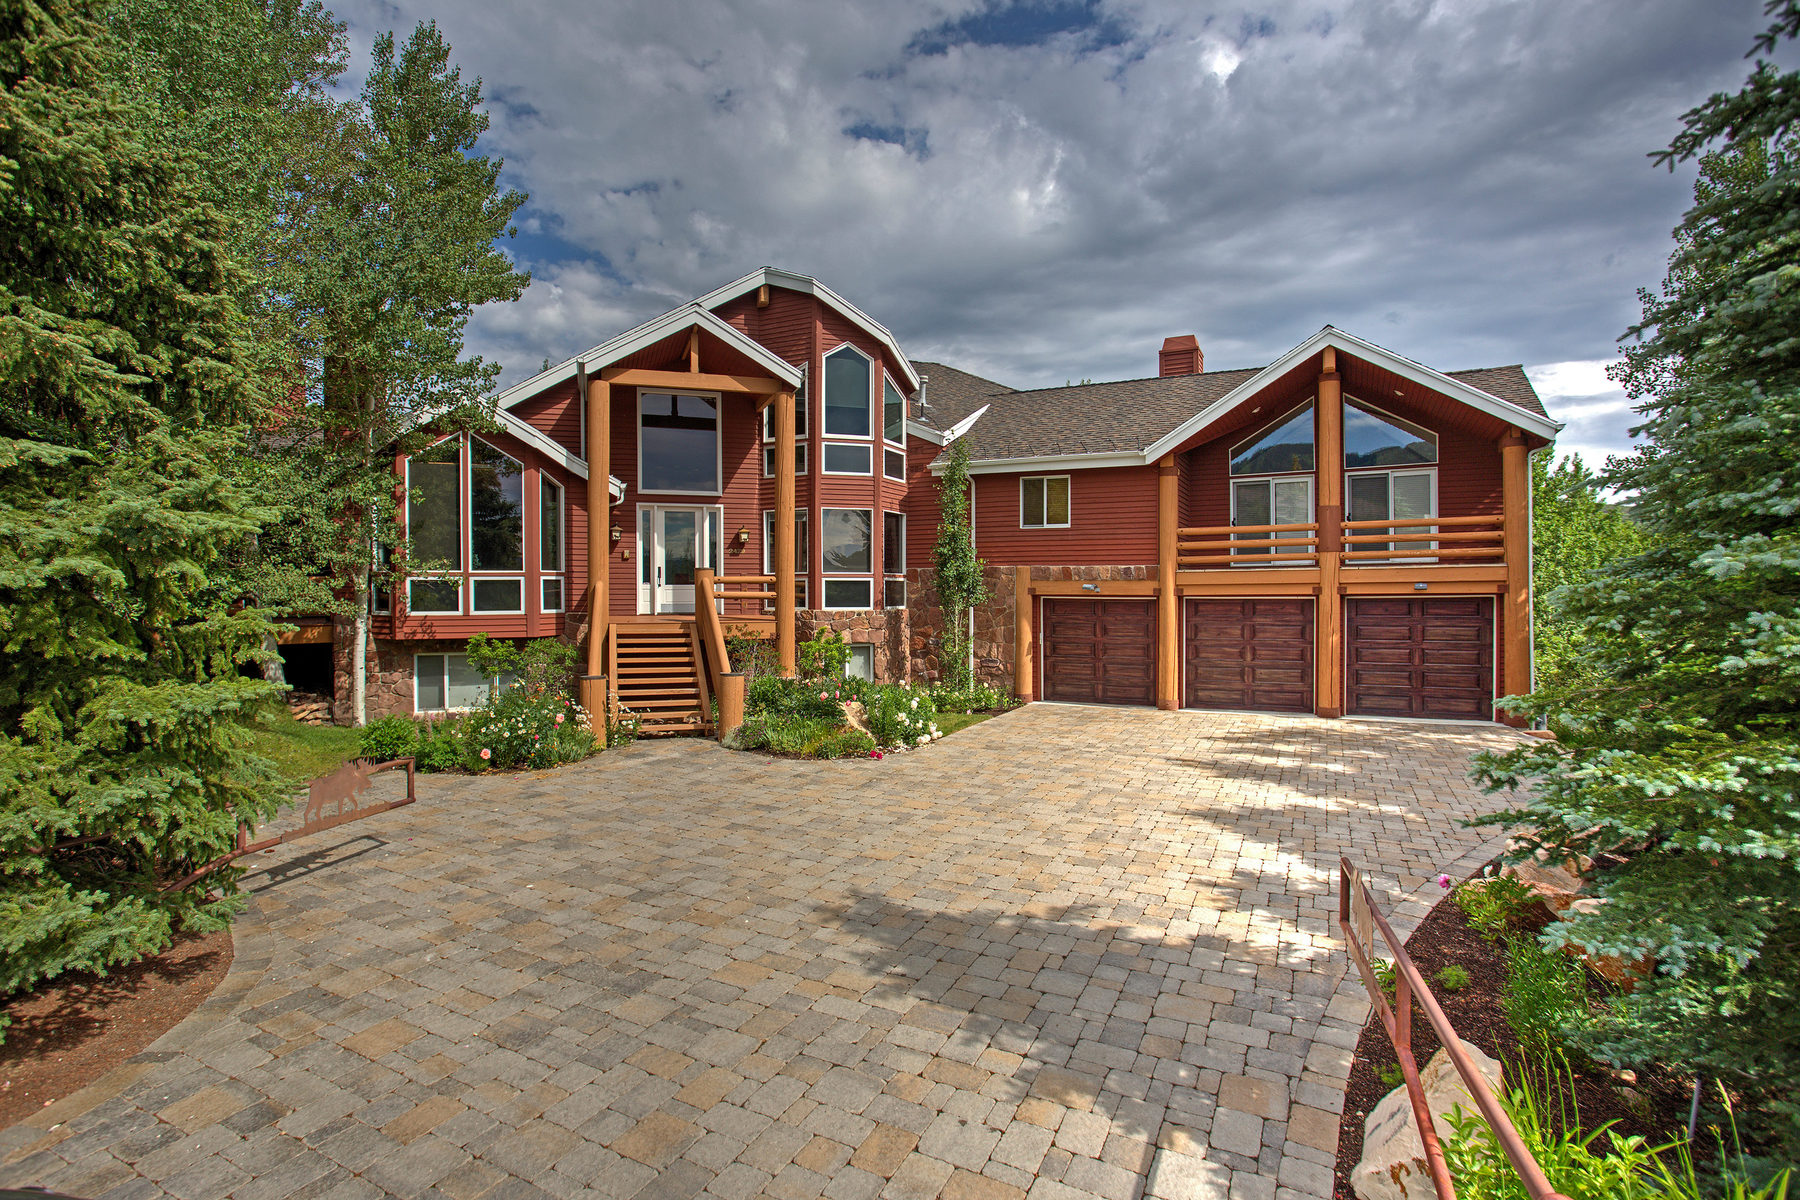 Maison unifamiliale pour l Vente à Seclusion and Views in a Prestigious Neighborhood 2429 Iron Canyon Dr Park City, Utah, 84060 États-Unis